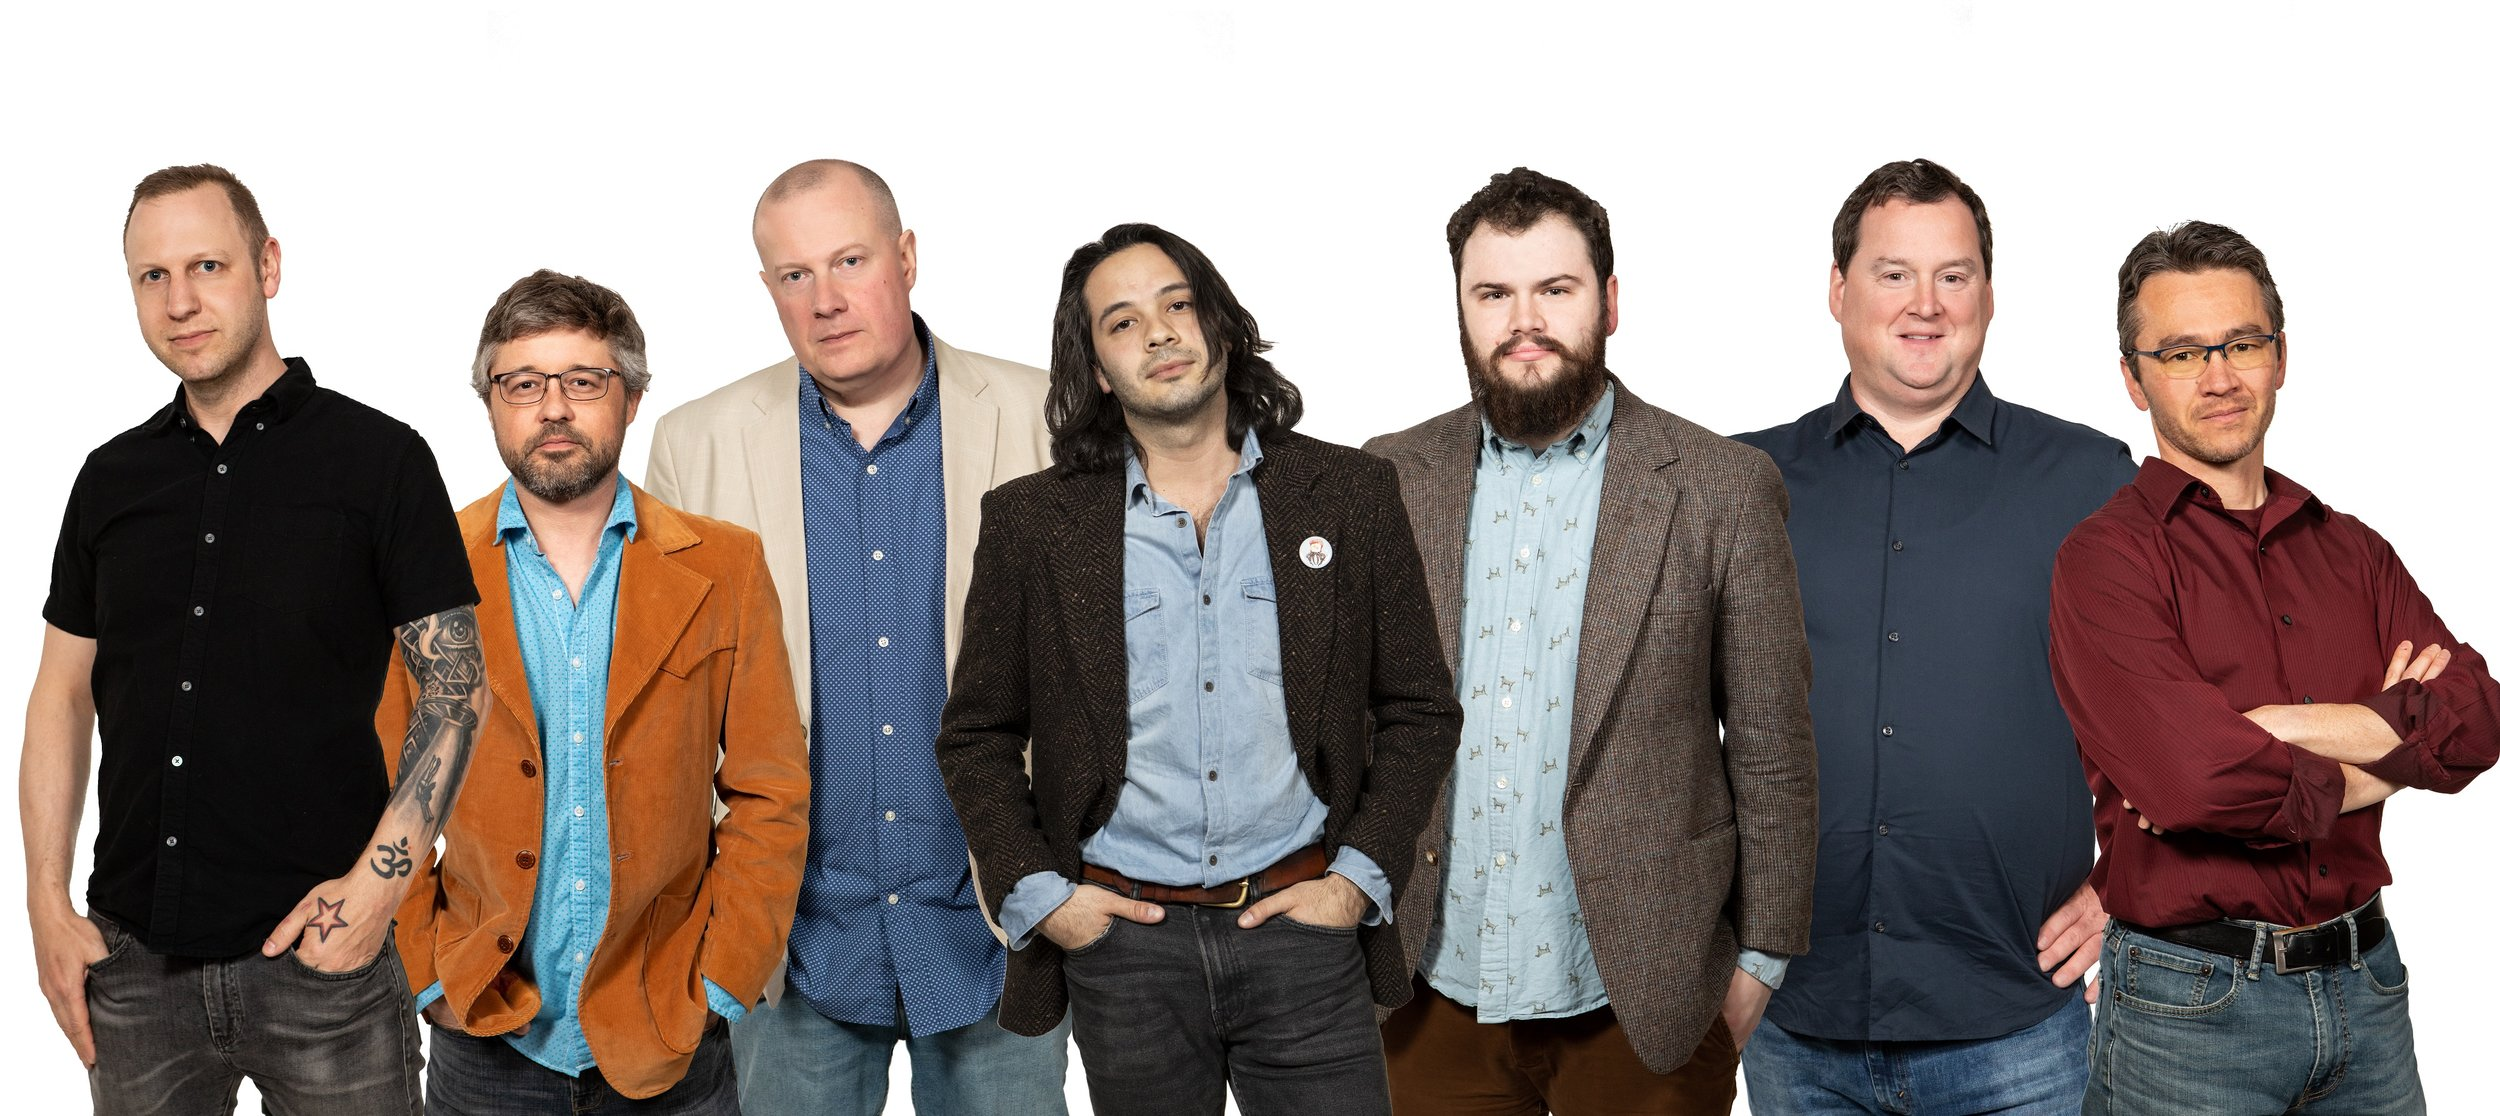 Rocking Horse Music Club 2019 (left to right): Eric Wagley, Brenden Harisaides, Brian Coombes, Patrik Gochez, Justin Cohn, Mike McAdam, and Myron Kibbee.